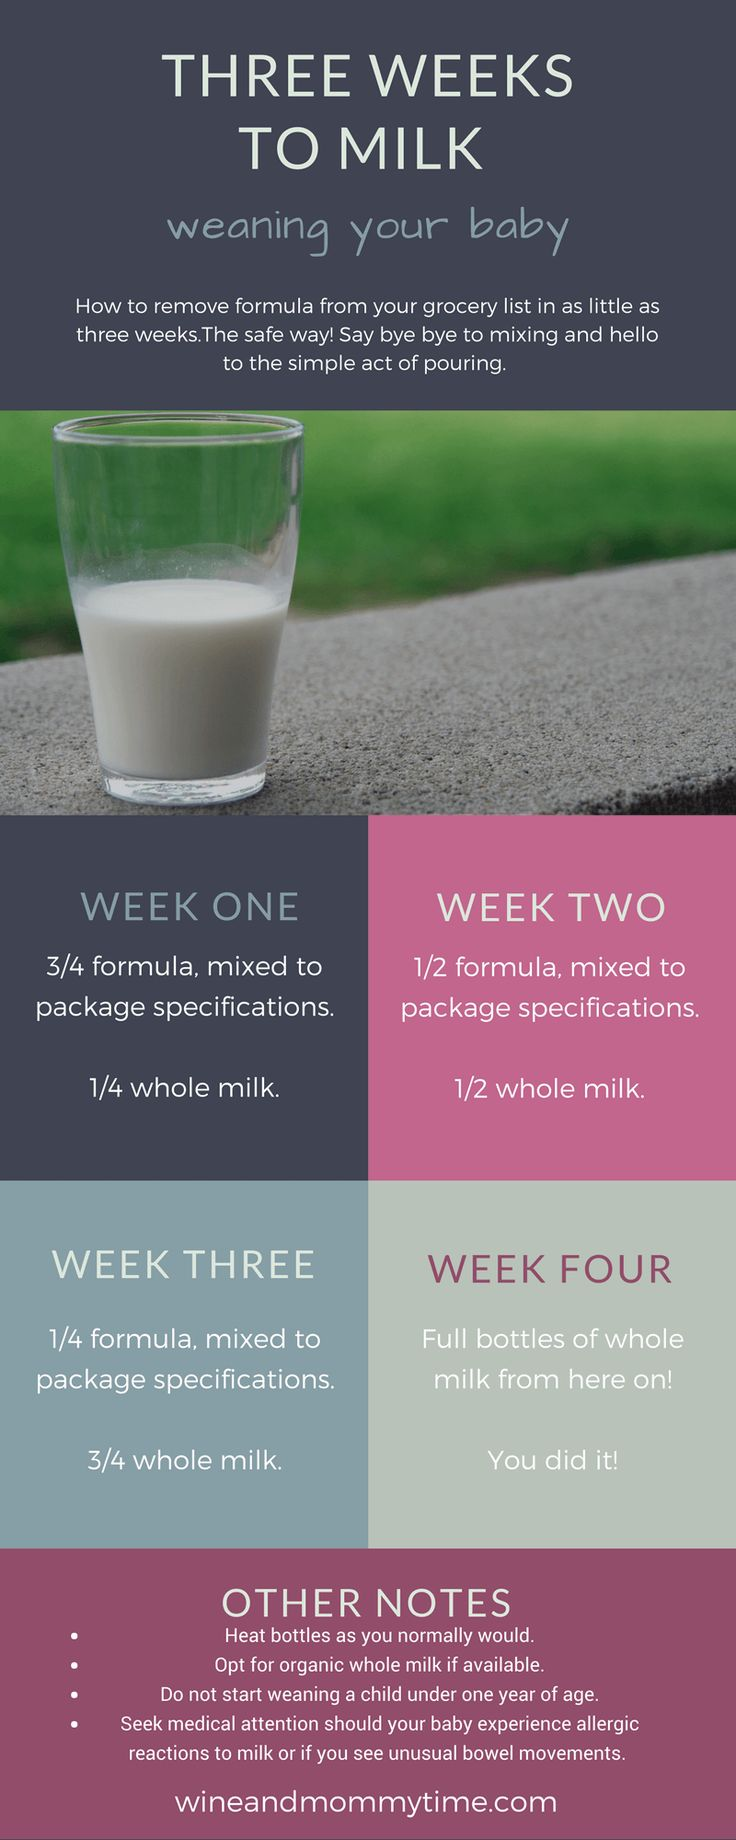 How to Wean from Formula to Cow's Milk - Wine and Mommy Time